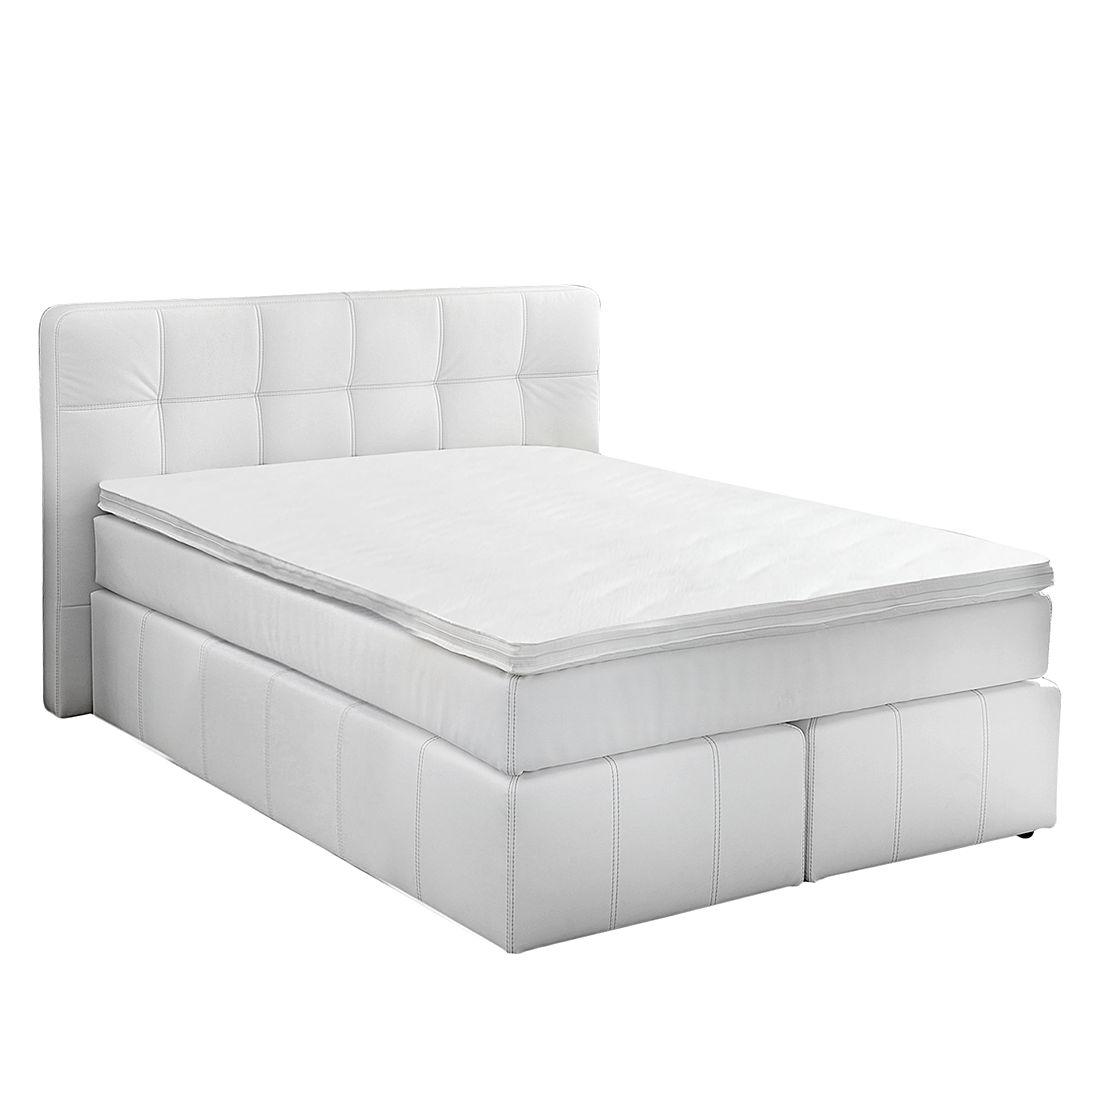 Lit boxspring Eastcoast - Cuir synthétique - 140 x 200cm - Blanc, Home Design